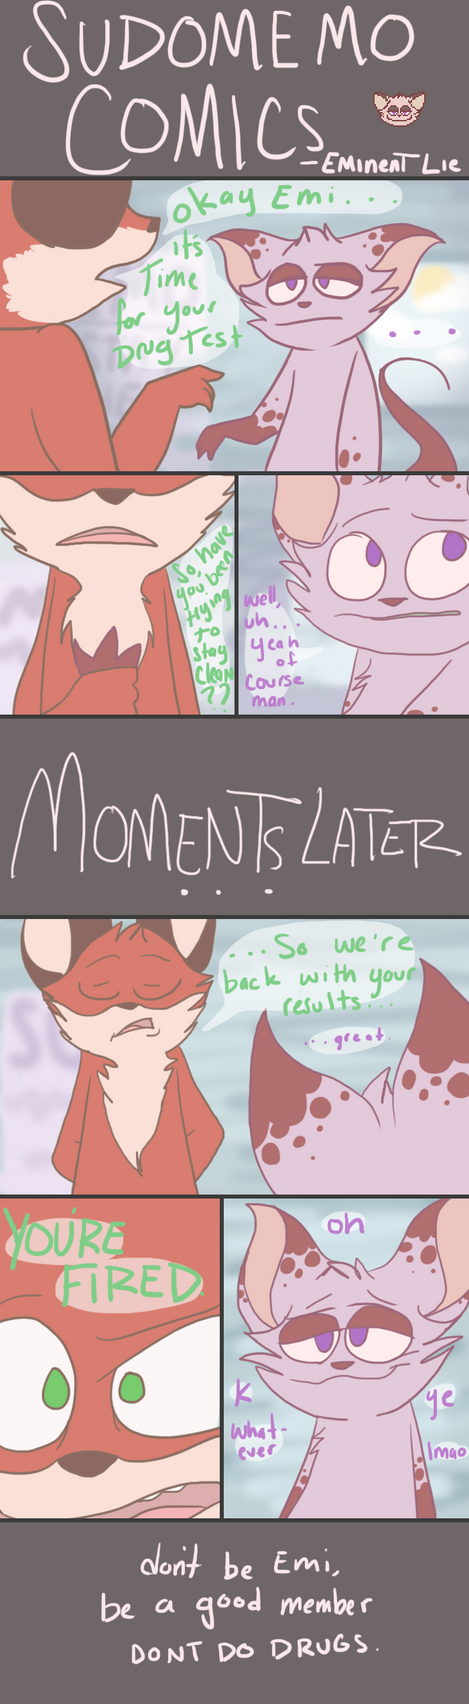 Sudocomic by Eminent-Lie